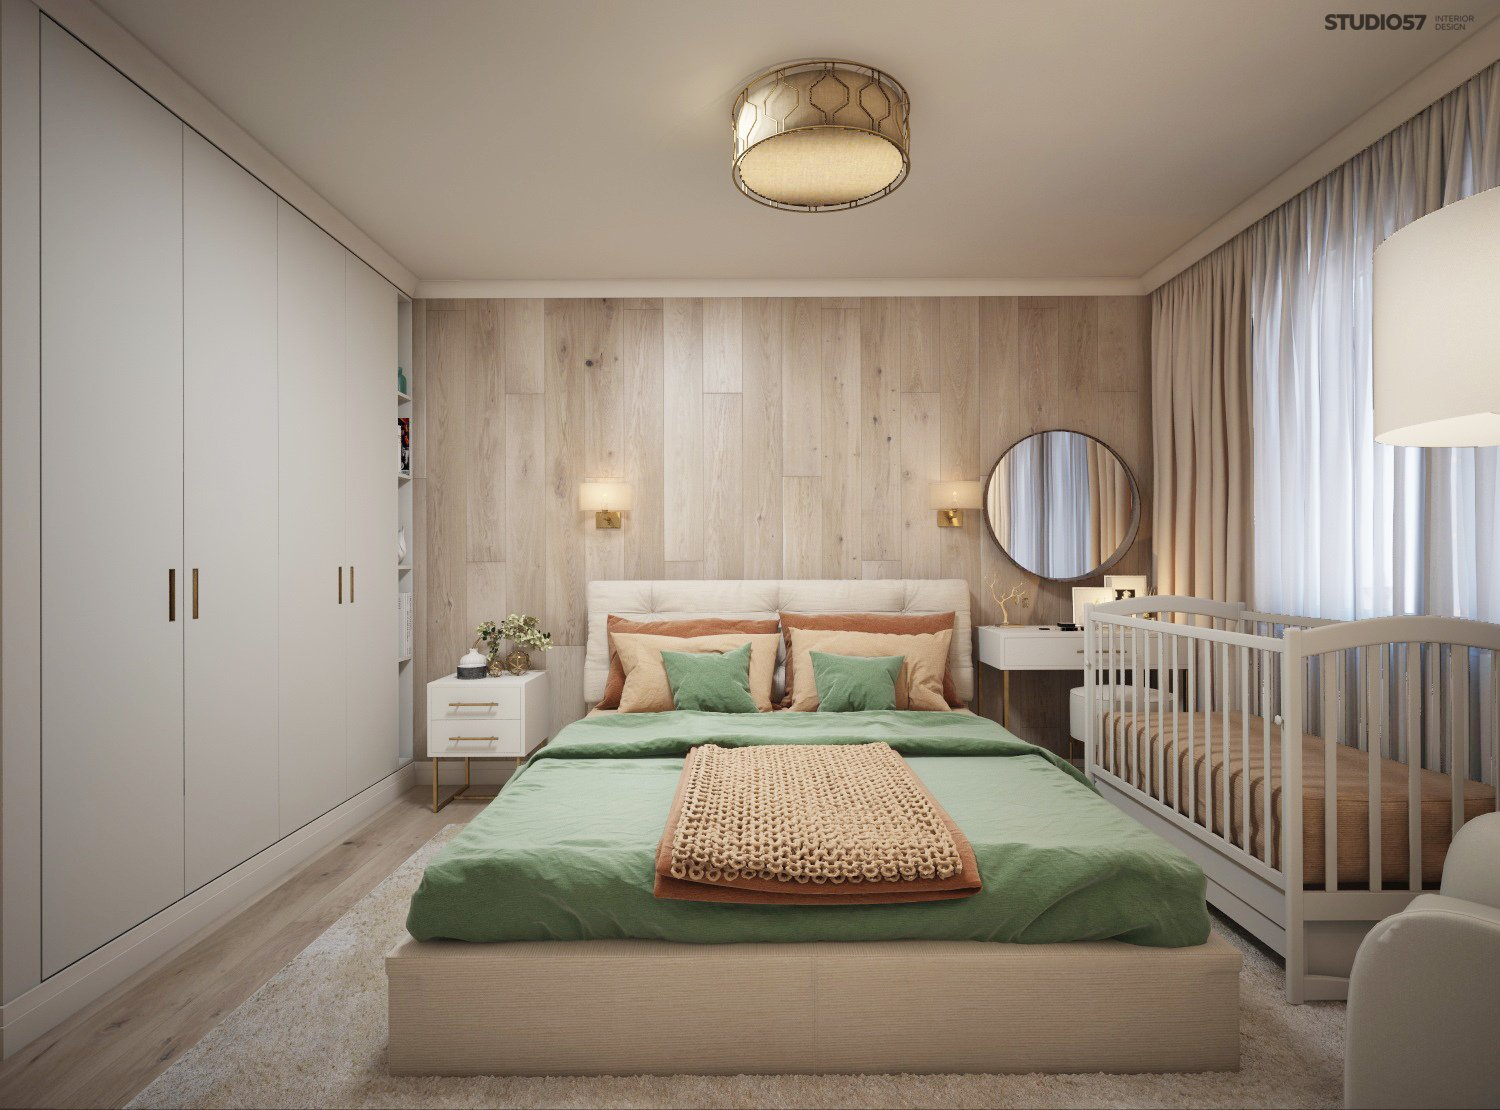 Bedroom with a wooden wall photo